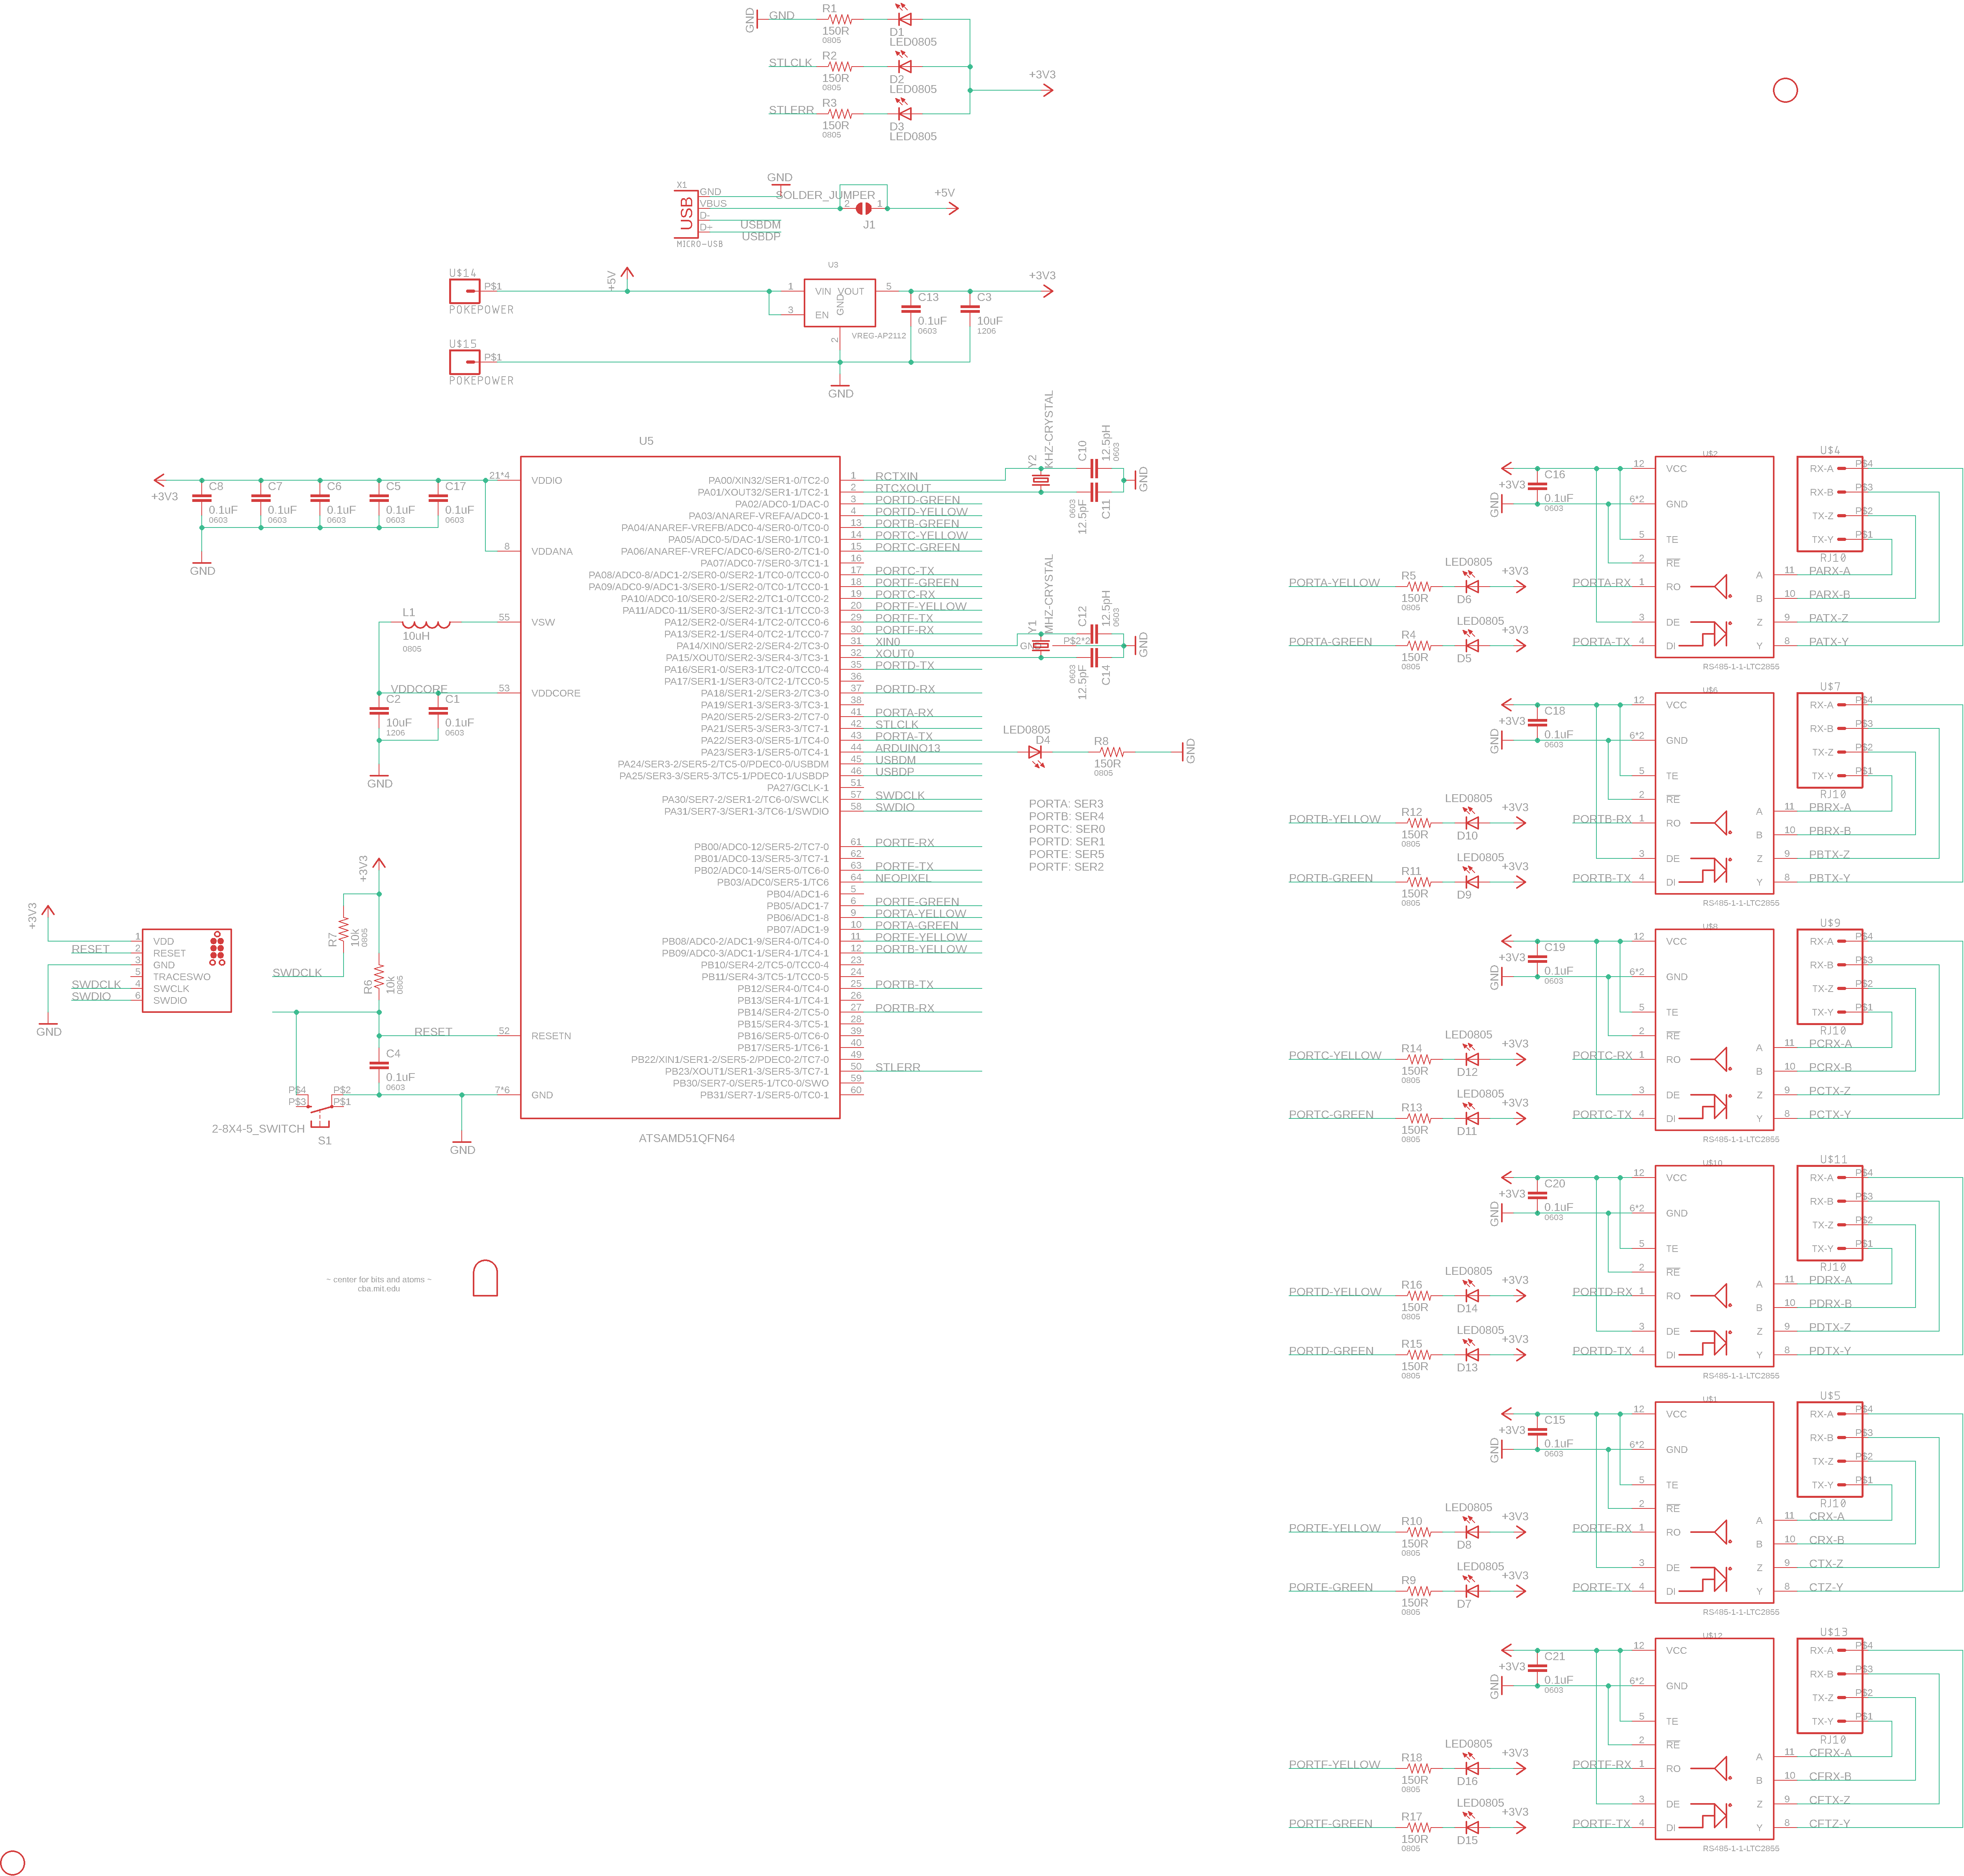 routerboard-atsamd51/schematic.png